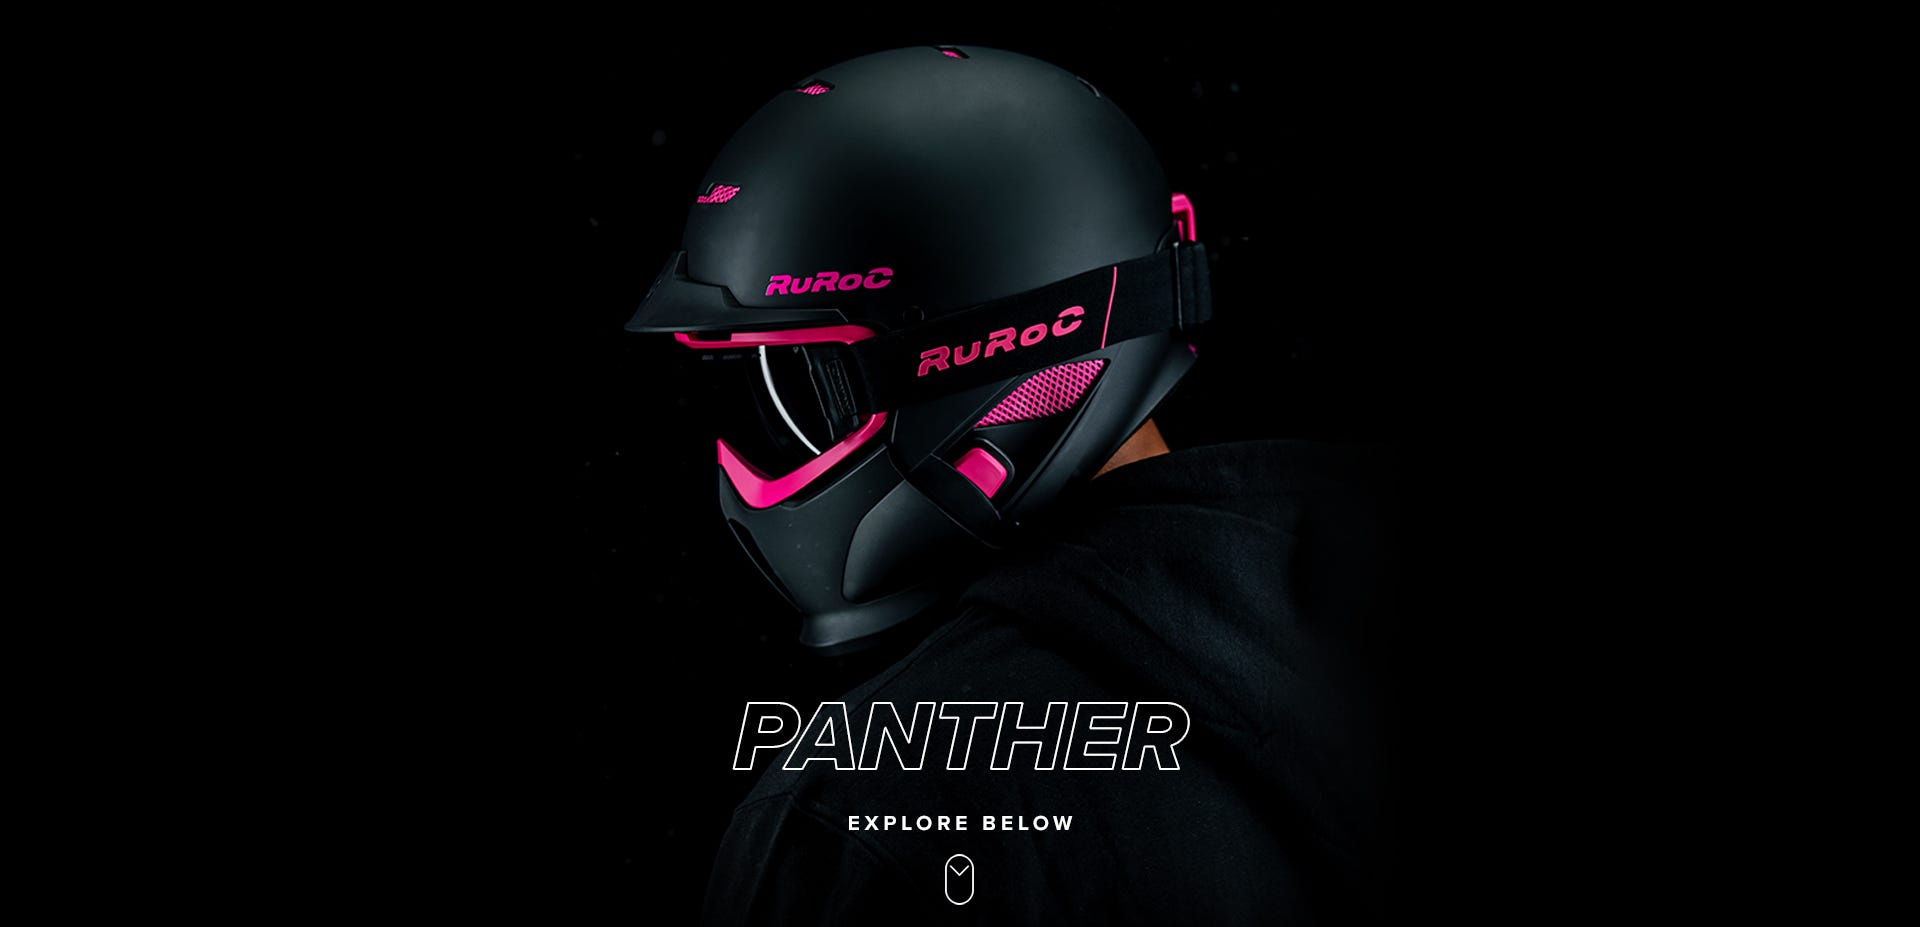 rg1-dx---panther---top-banner_1.jpg